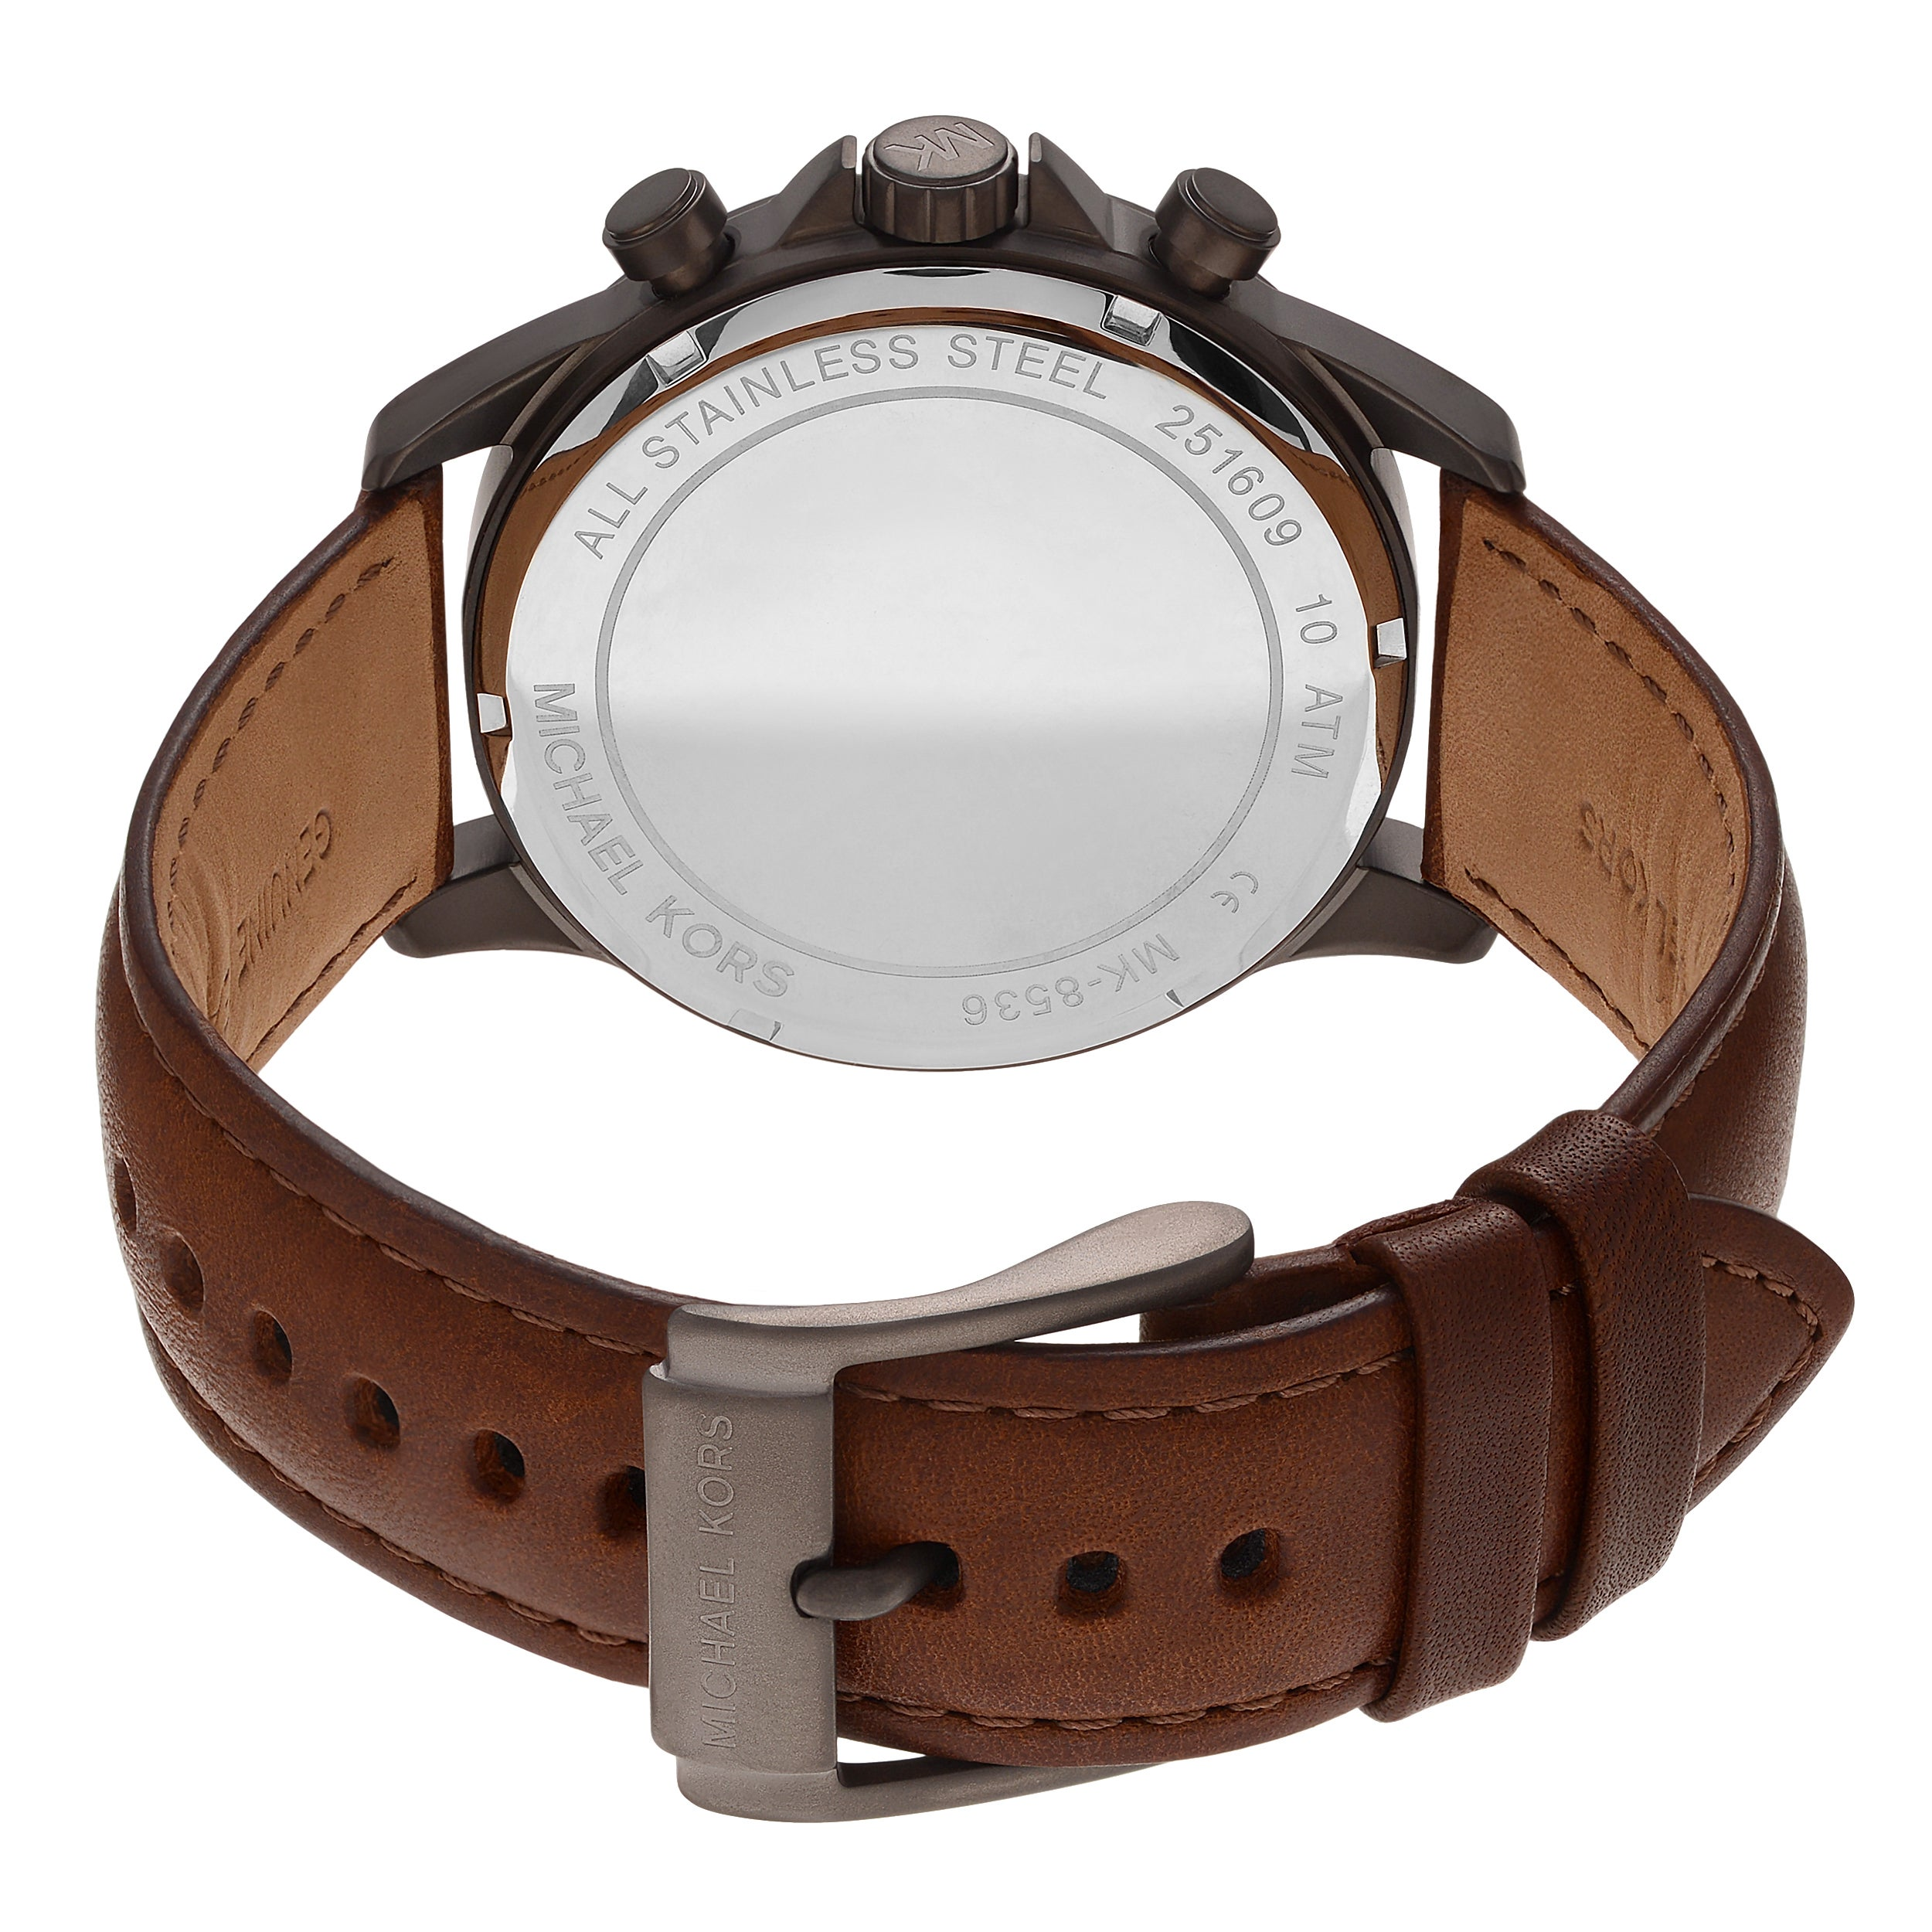 c5a1443a2cc3 Shop Michael Kors Men s MK8536  Gage  Gunmetal Tone Stainless Steel  Chronograph Dial Leather Strap Watch - Brown - Free Shipping Today -  Overstock - ...